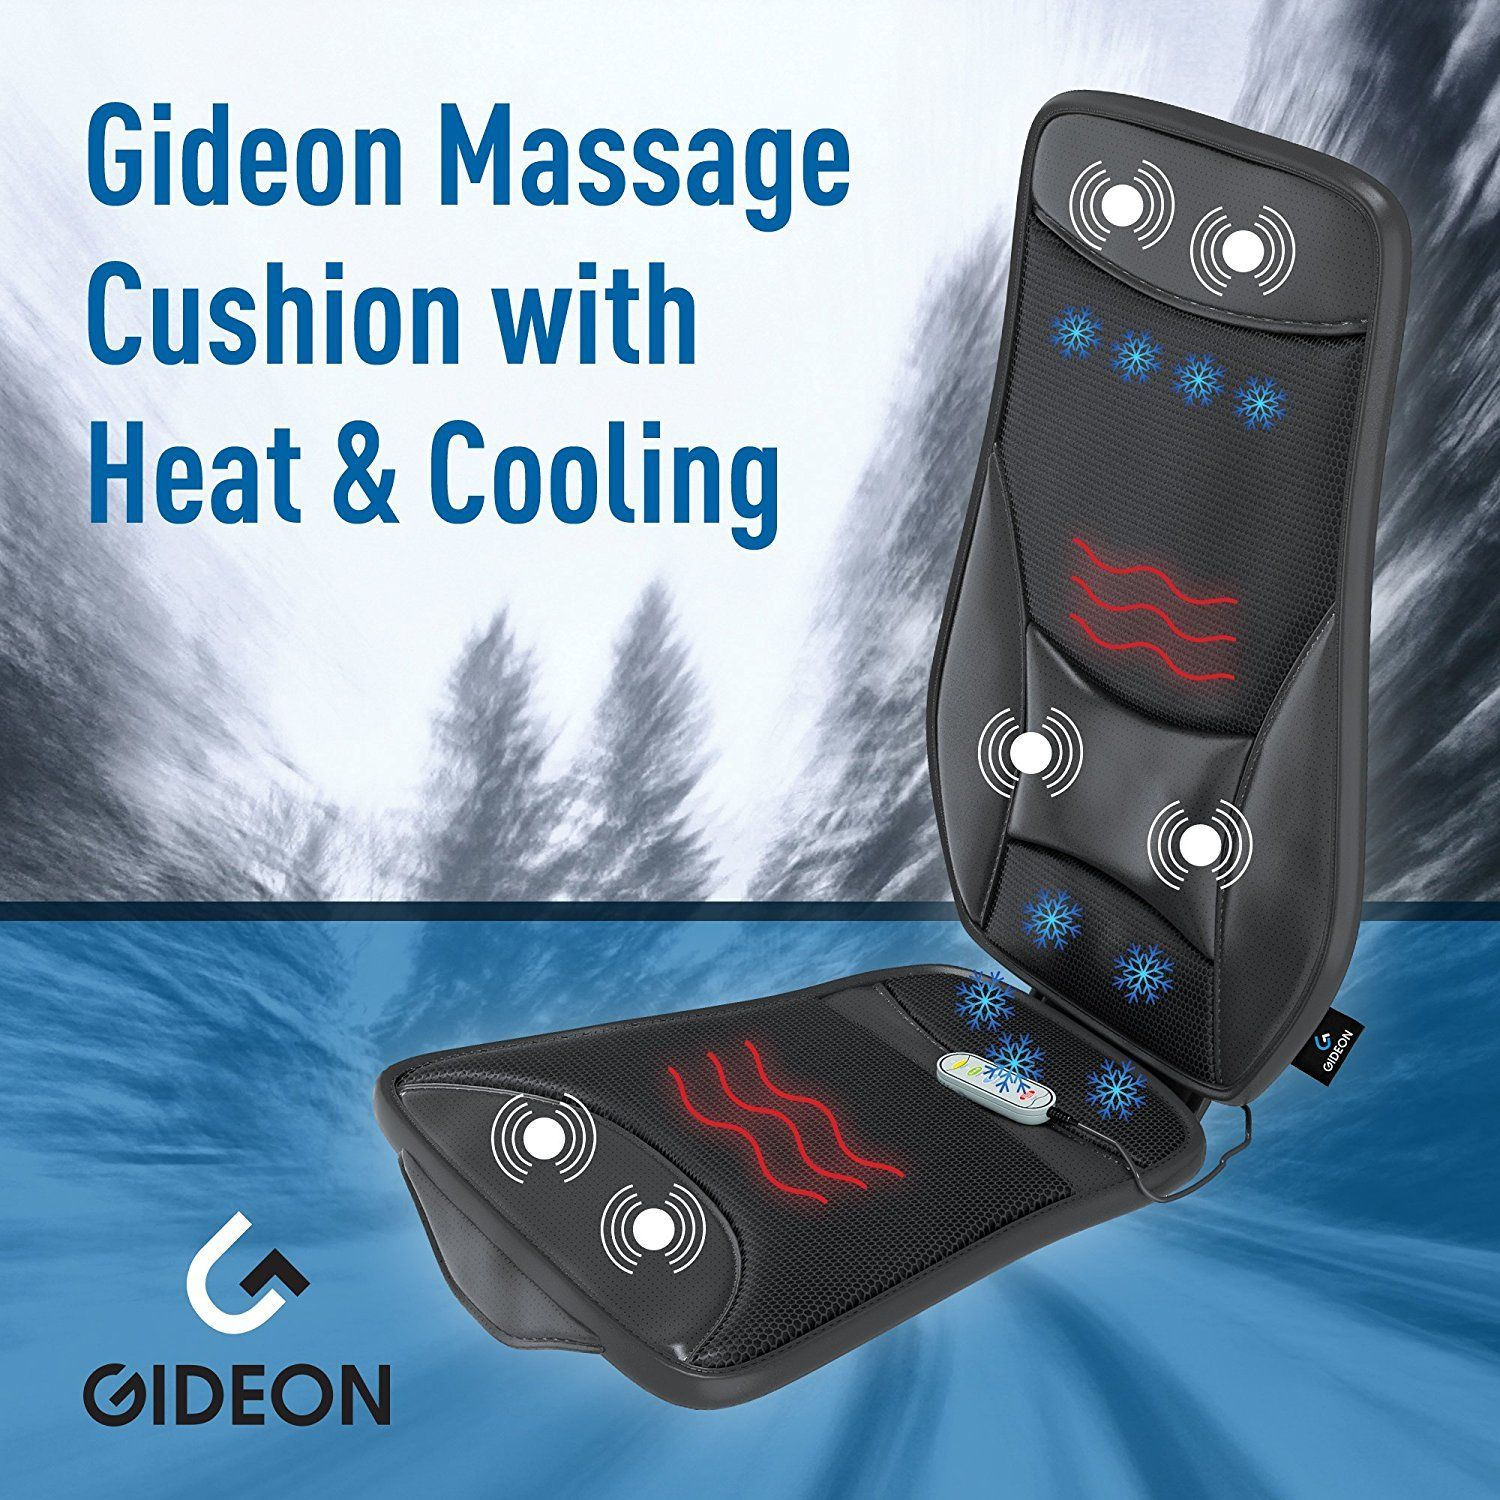 Gideon Luxury Car Seat Cushion Cooling and Heating